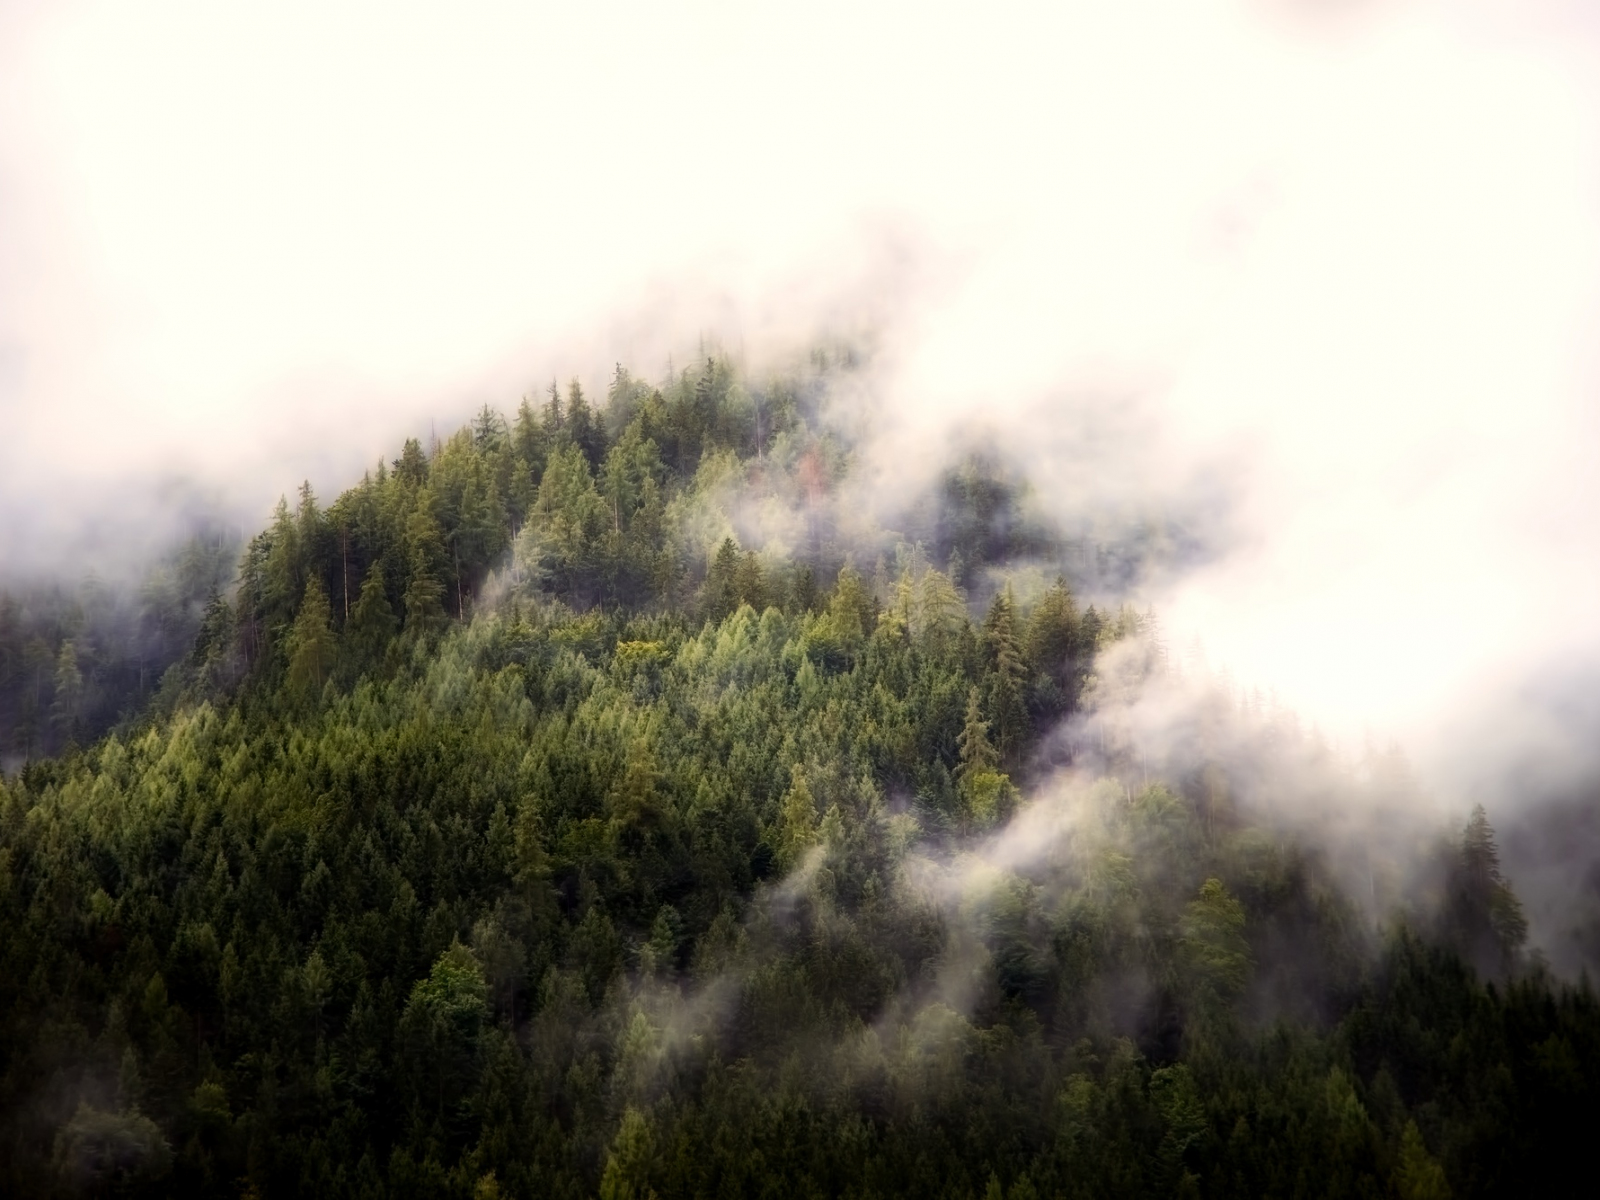 1600x1200 wallpaper Fog, aerial view, forest, nature, trees